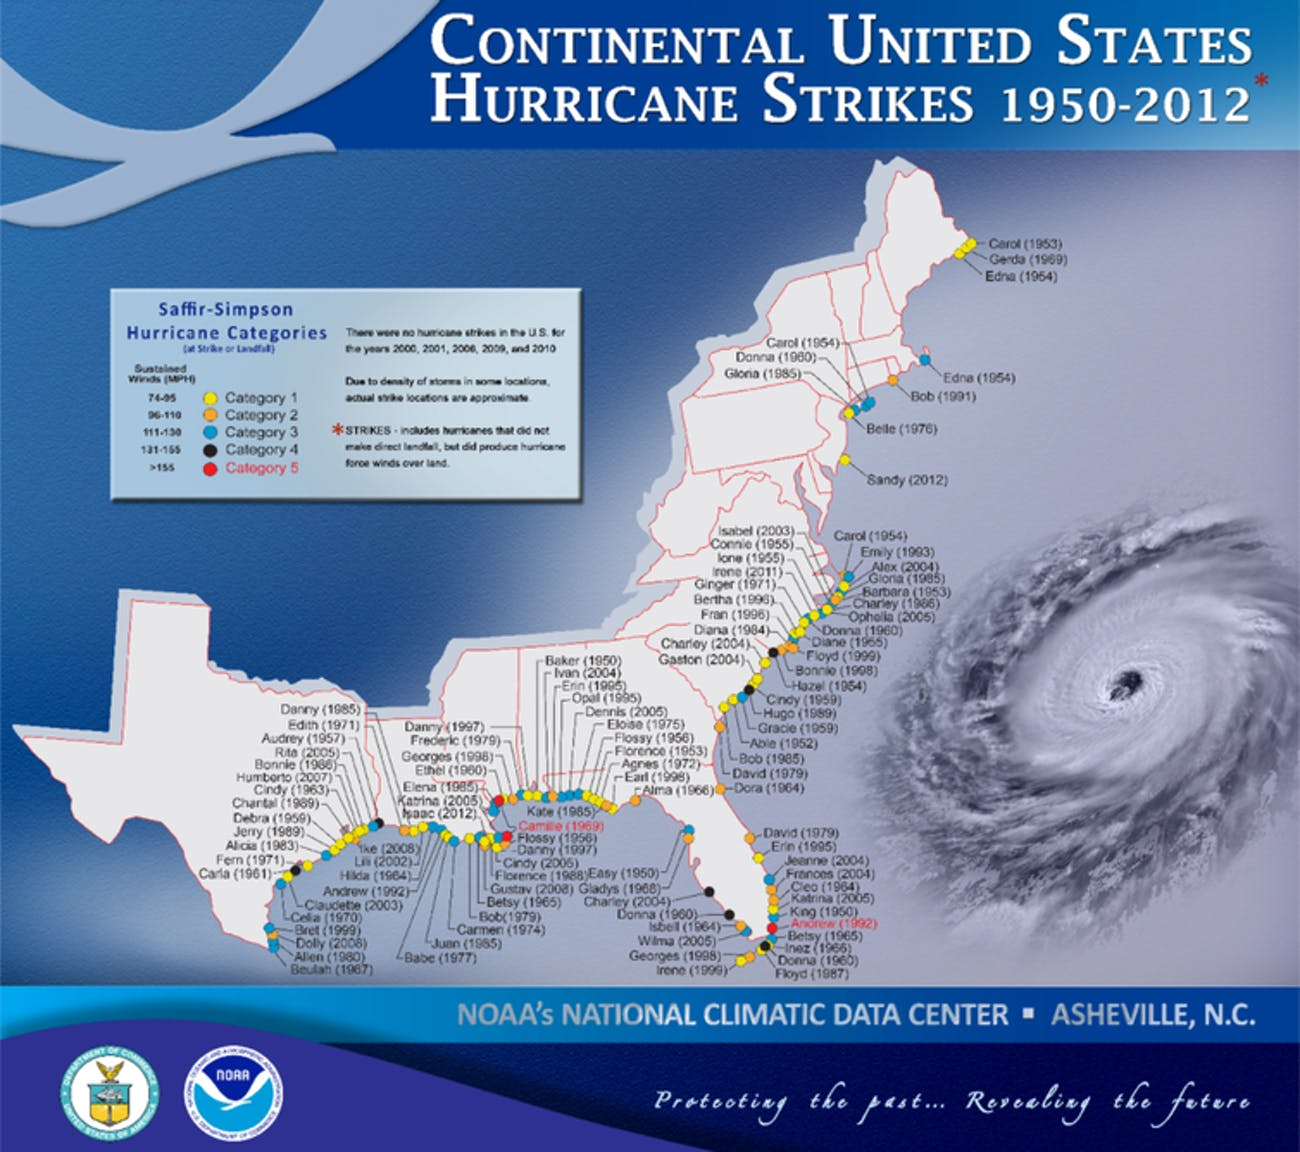 The southern United States is regularly affected by hurricanes.